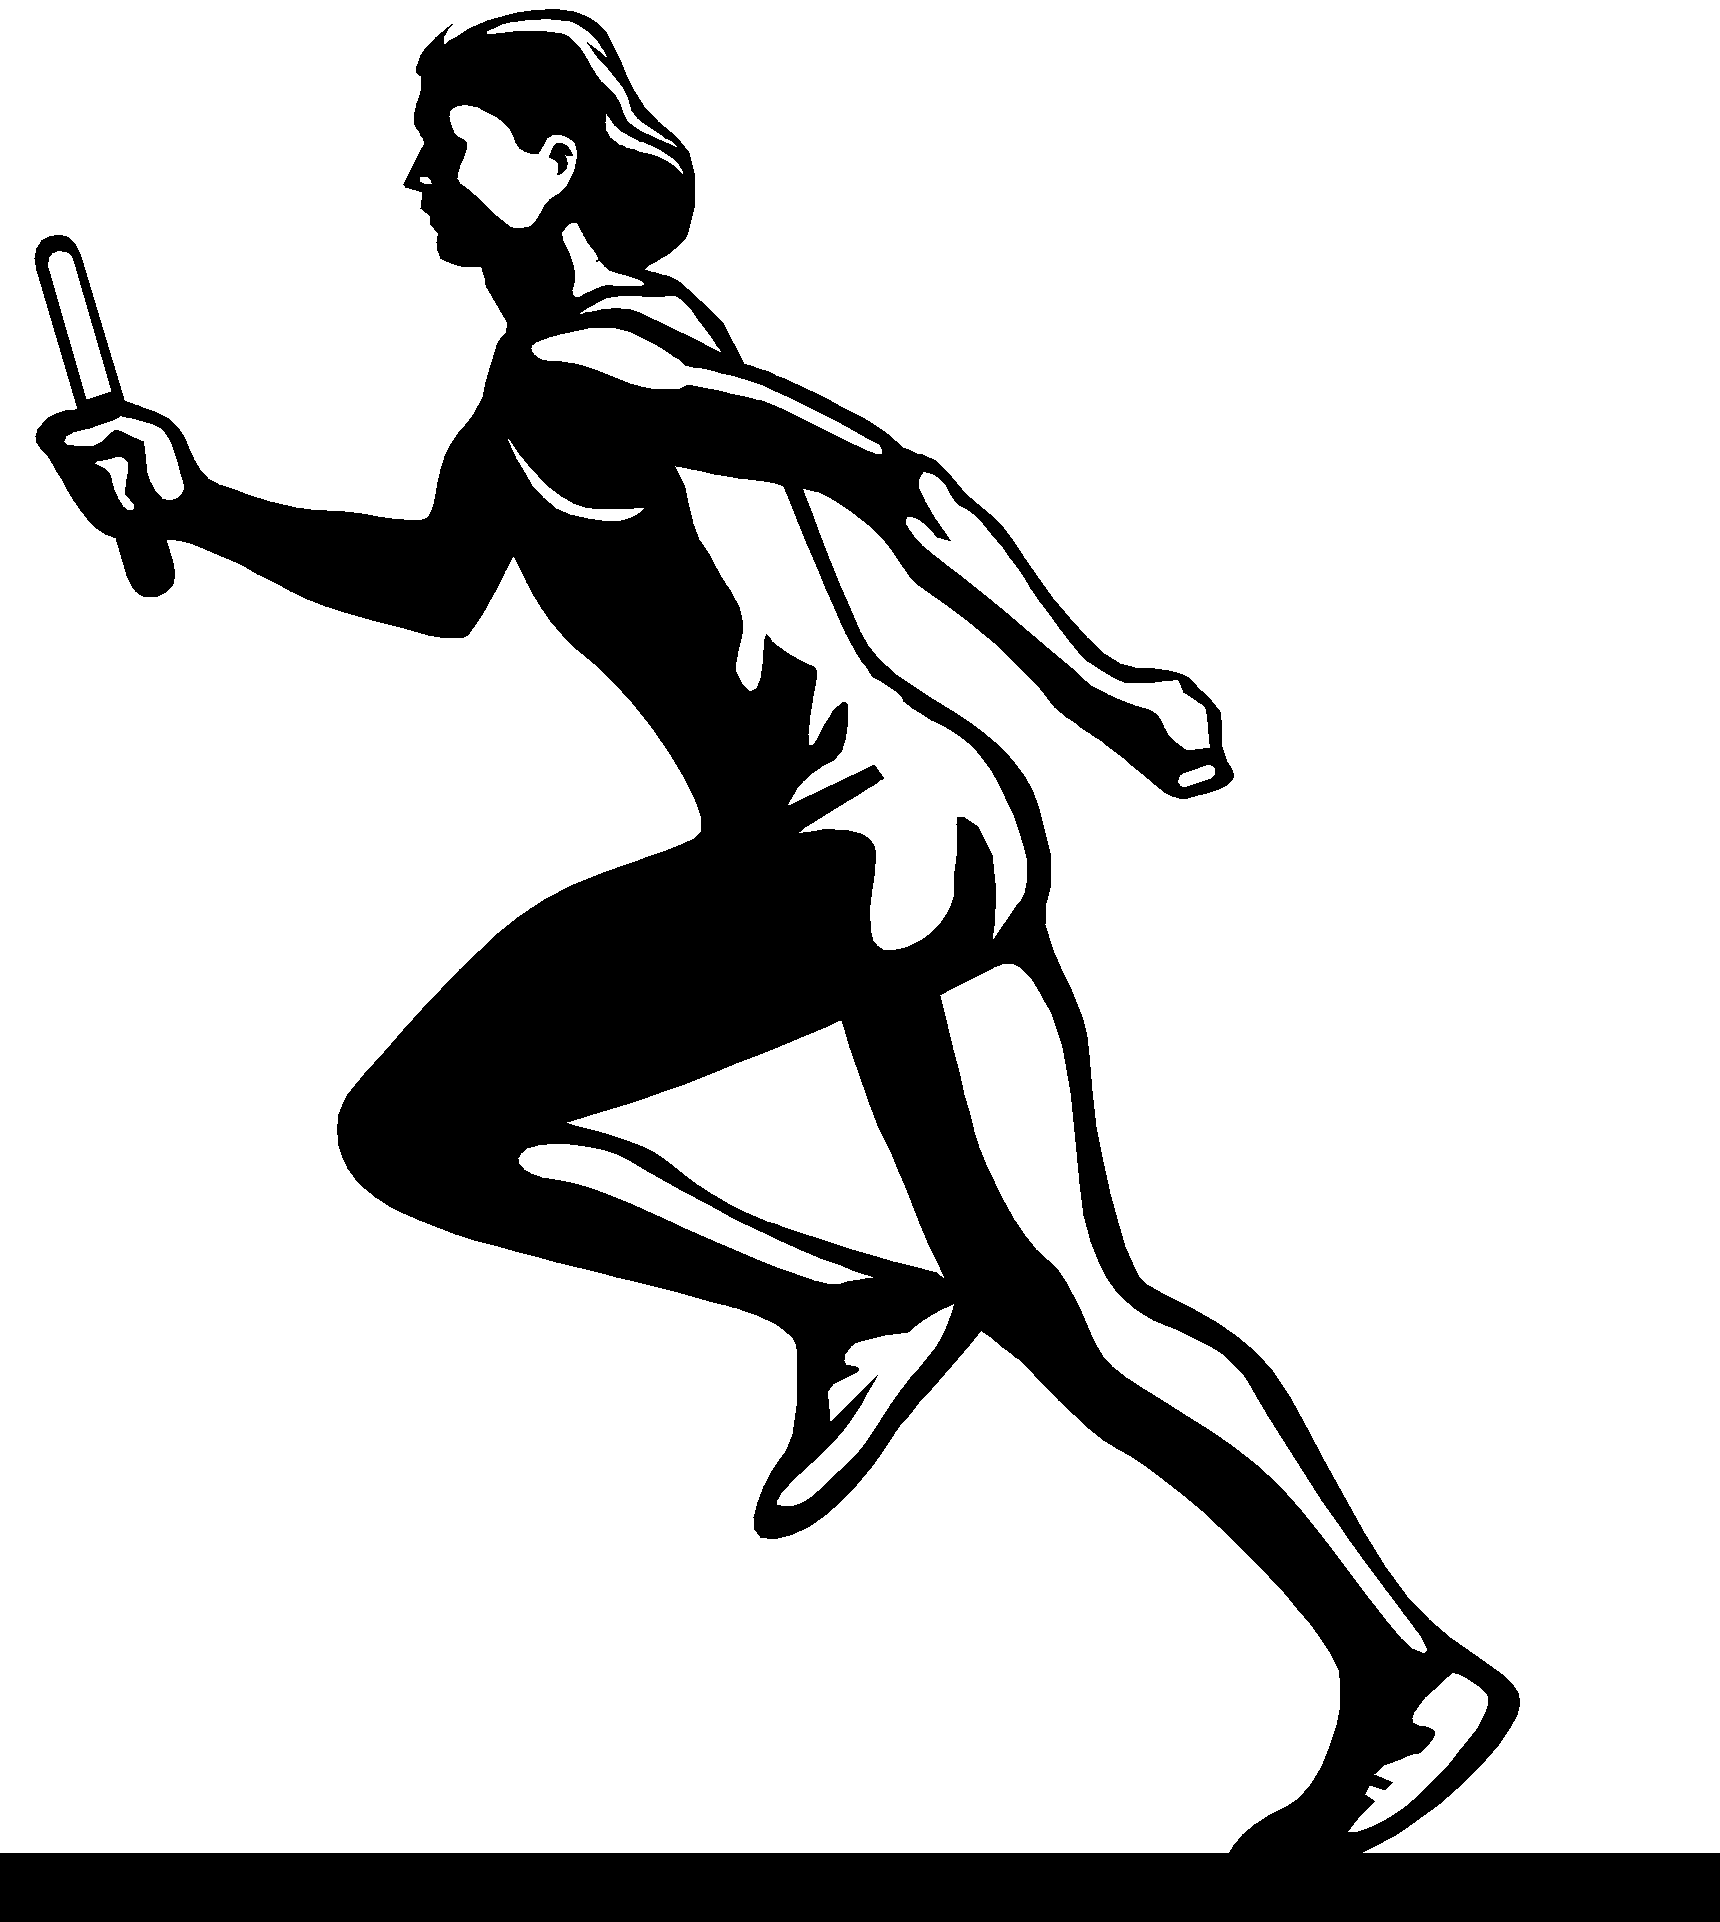 Track And Field Clip Art The Cliparts 2-Track and field clip art the cliparts 2-7